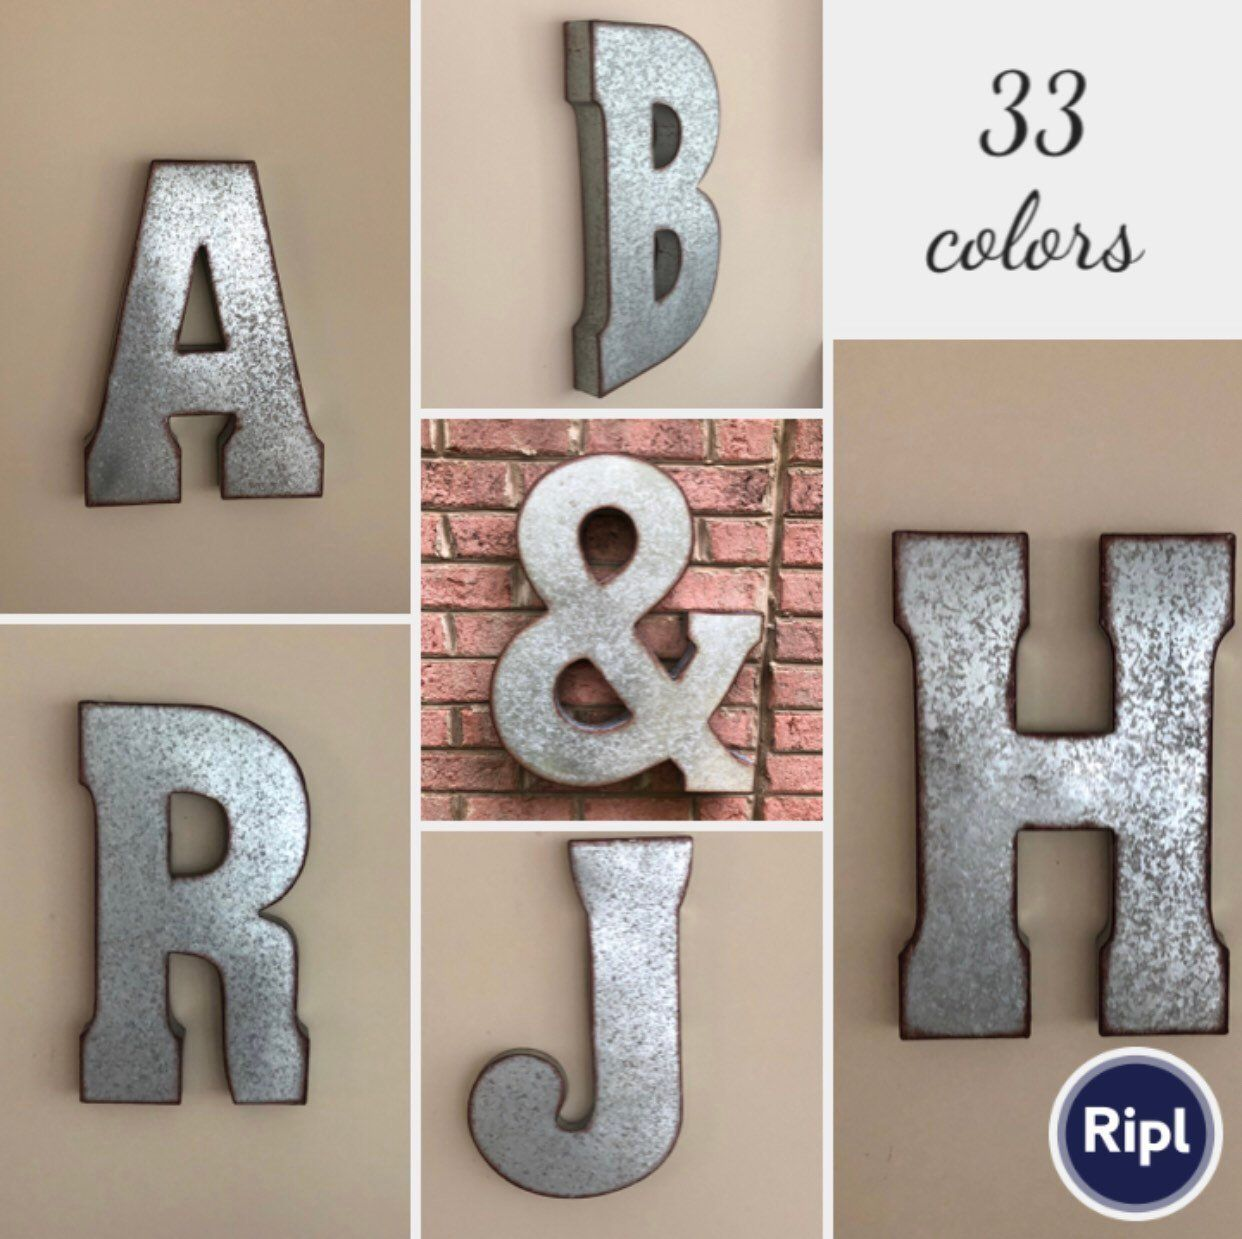 Sale Extra Large Metal Letters Wall Decor Galvanized Metal Letters